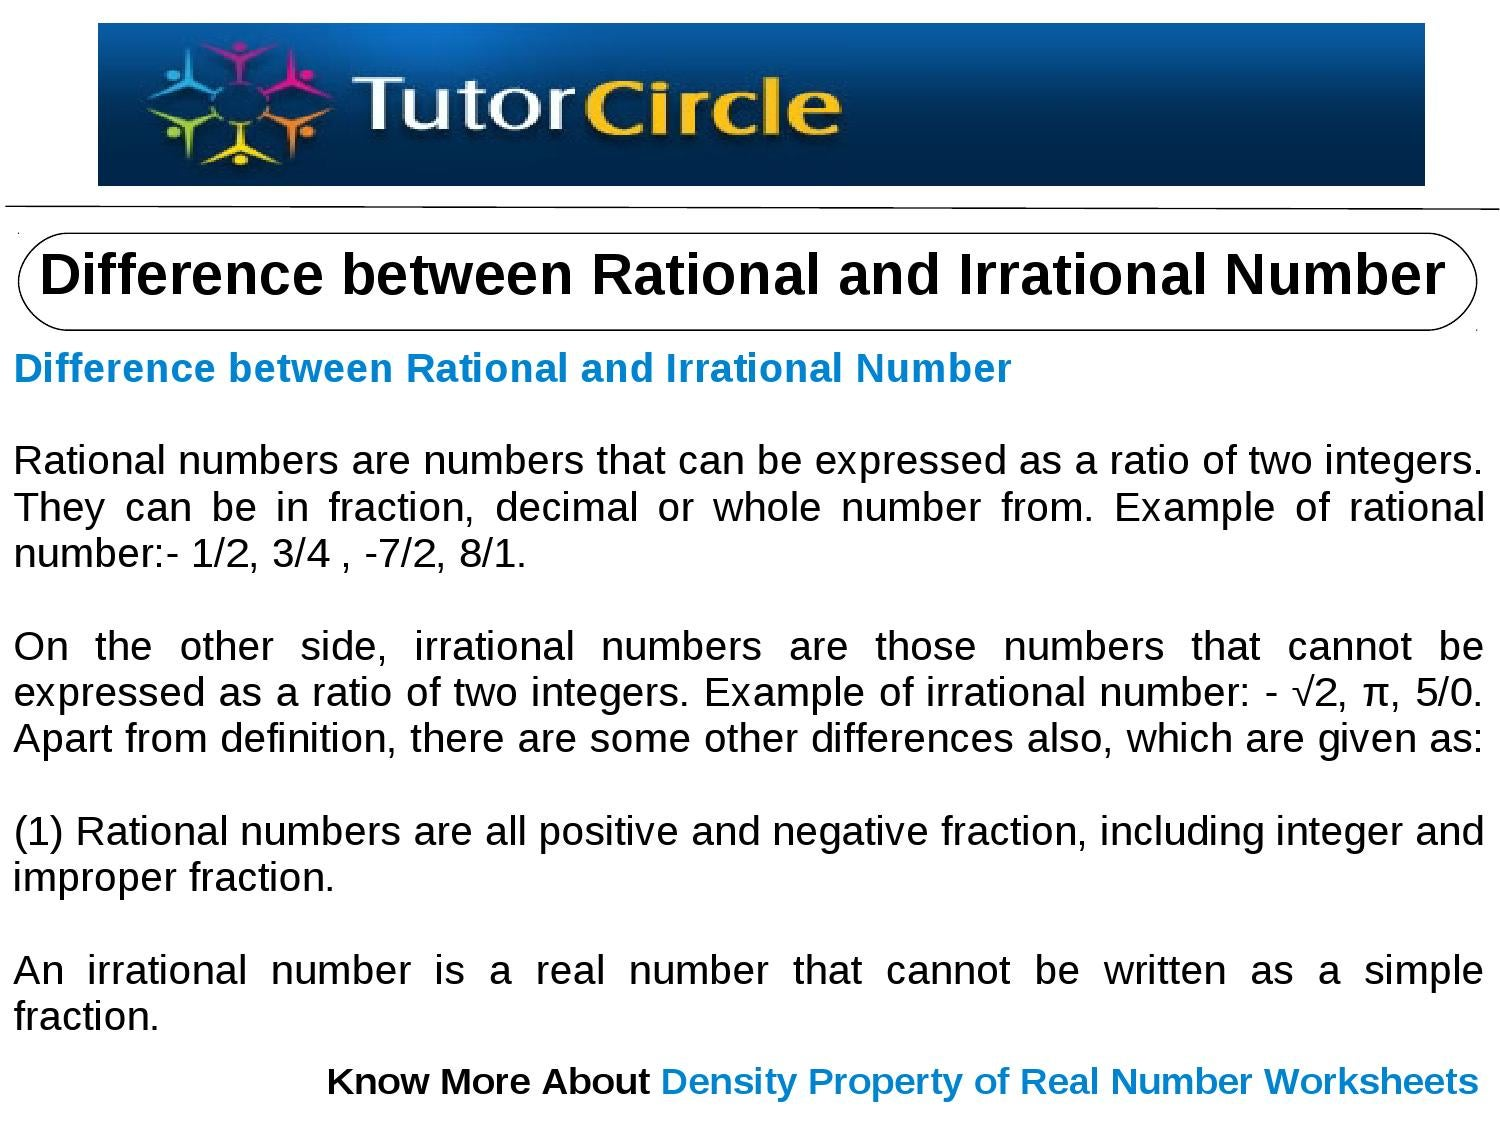 Real Numbers Worksheet   Free Printables Worksheet together with Rational and Irrational Numbers   Education   Pinterest   Math also rational vs irrational numbers worksheet doc3513 Rational Vs also  together with  likewise  together with Clifying Rational   Irrational Numbers by Kevin Wilda   TpT further  furthermore Venn Diagram Of Rational and Irrational Numbers Admirably Estimating as well Math Worksheets Irrational Numbers Best Rational Irrational Numbers as well  together with Rational vs irrational worksheet  1485489   Worksheets liry additionally Rational and Irrational Numbers in addition The Rational Number System Worksheet Solutions also  likewise Know that there are numbers that are not rational  and approximate. on rational and irrational numbers worksheet